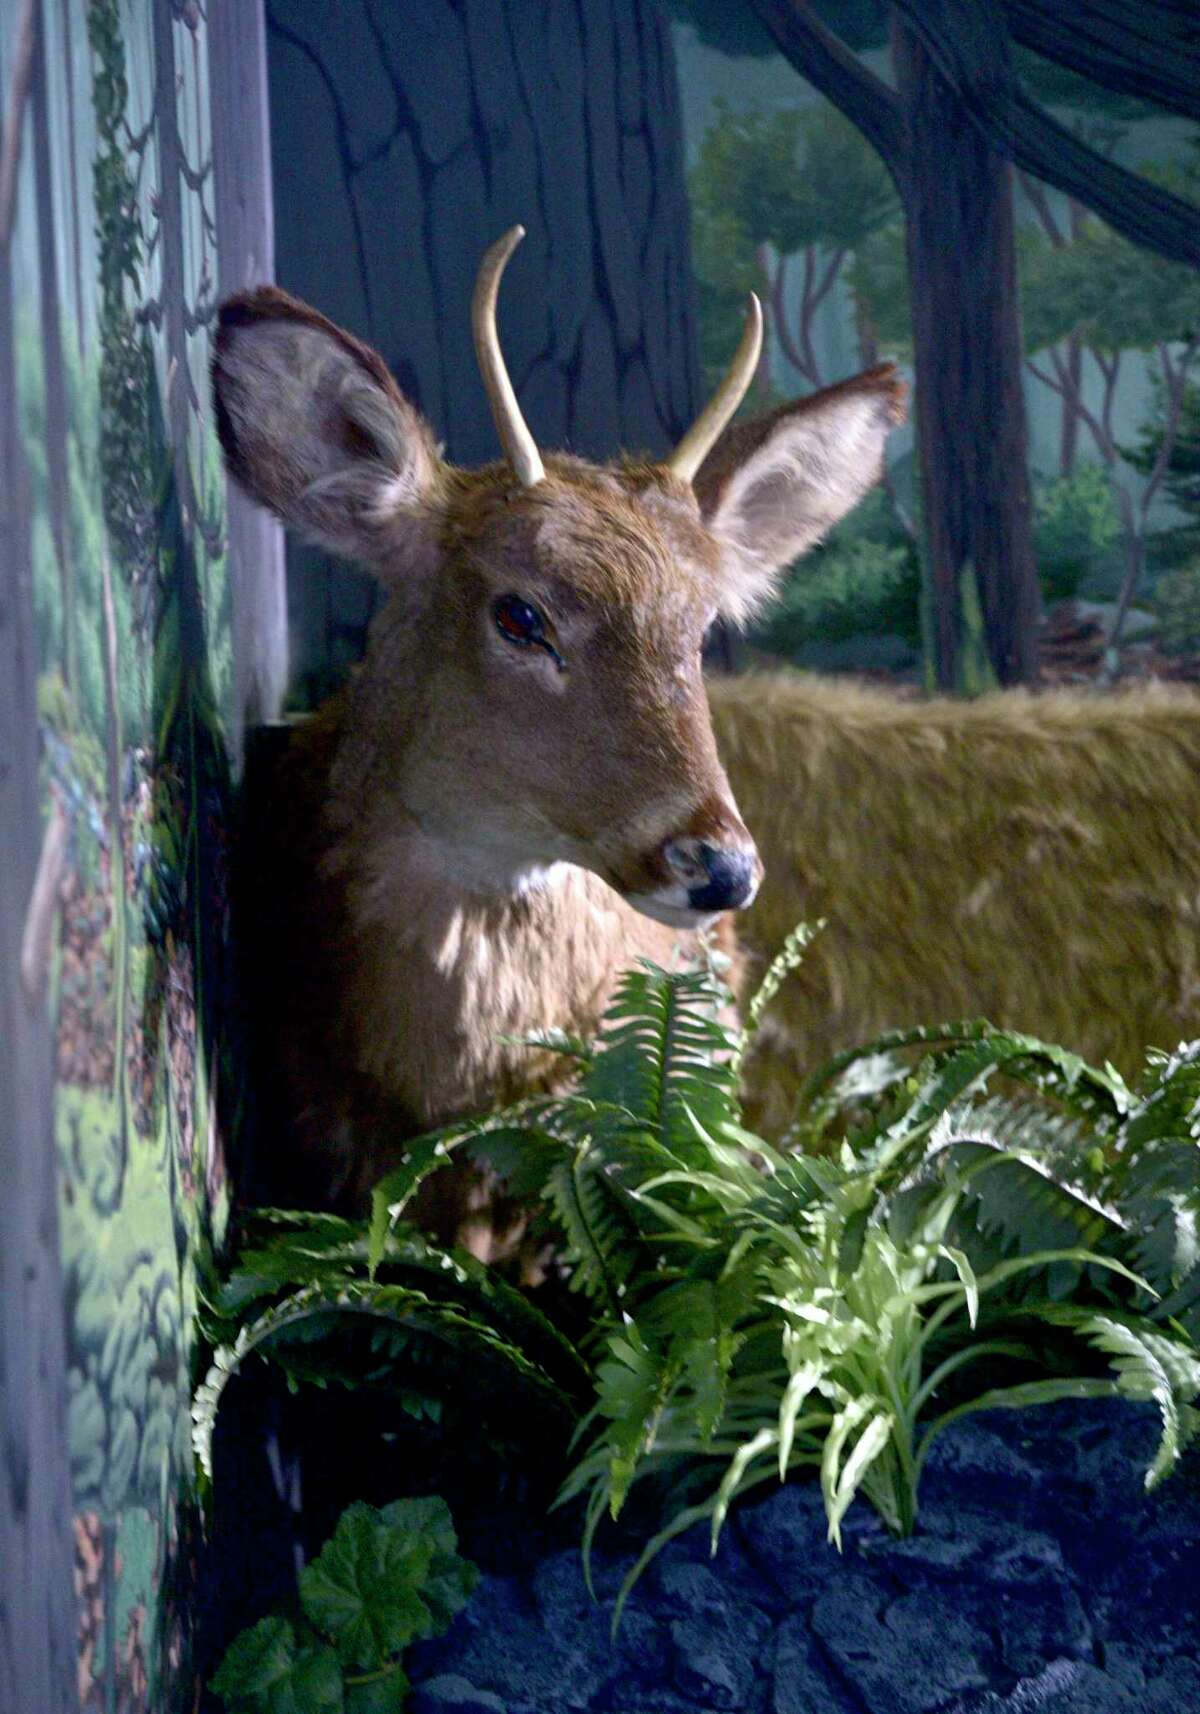 A deer inside the Wigwam Escape Room at the Institute for American Indian Studies in Washington, Conn. June 12, 2019.